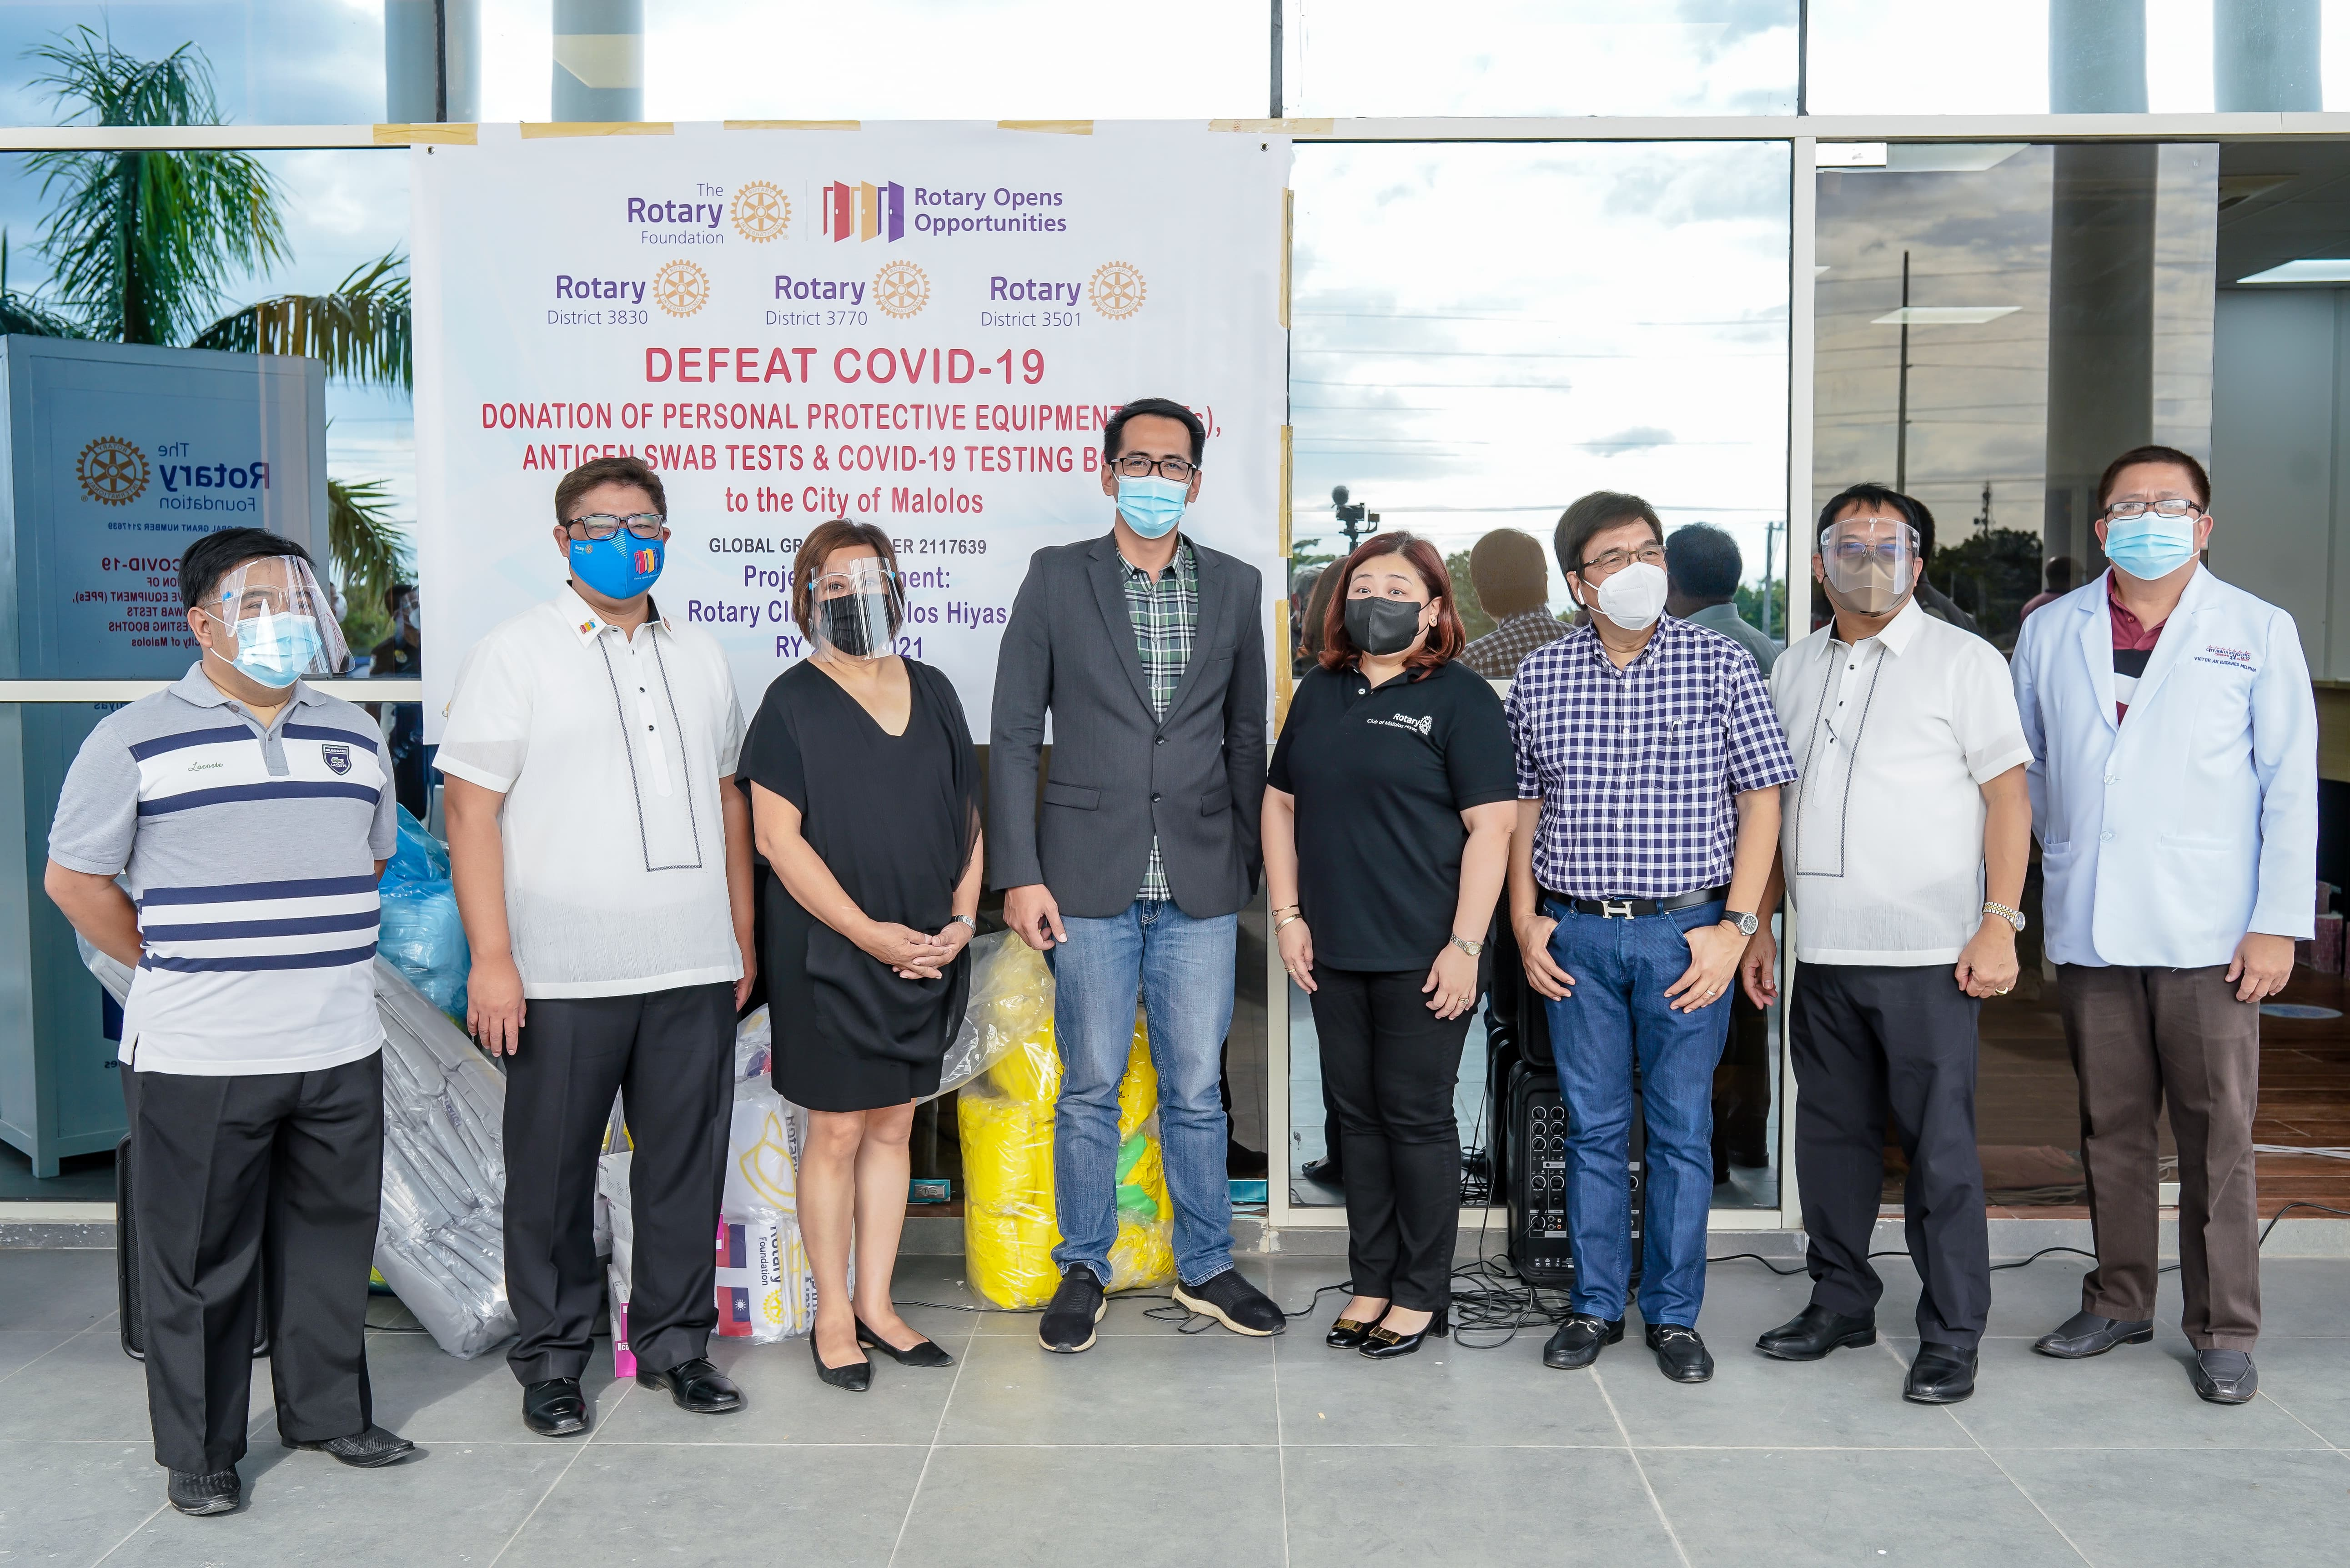 Rotary Club of Malolos Hiyas donates PhP1.5M worth of COVID Test Booths, Antigen Swab Kits, and PPEs to City of Malolos 1